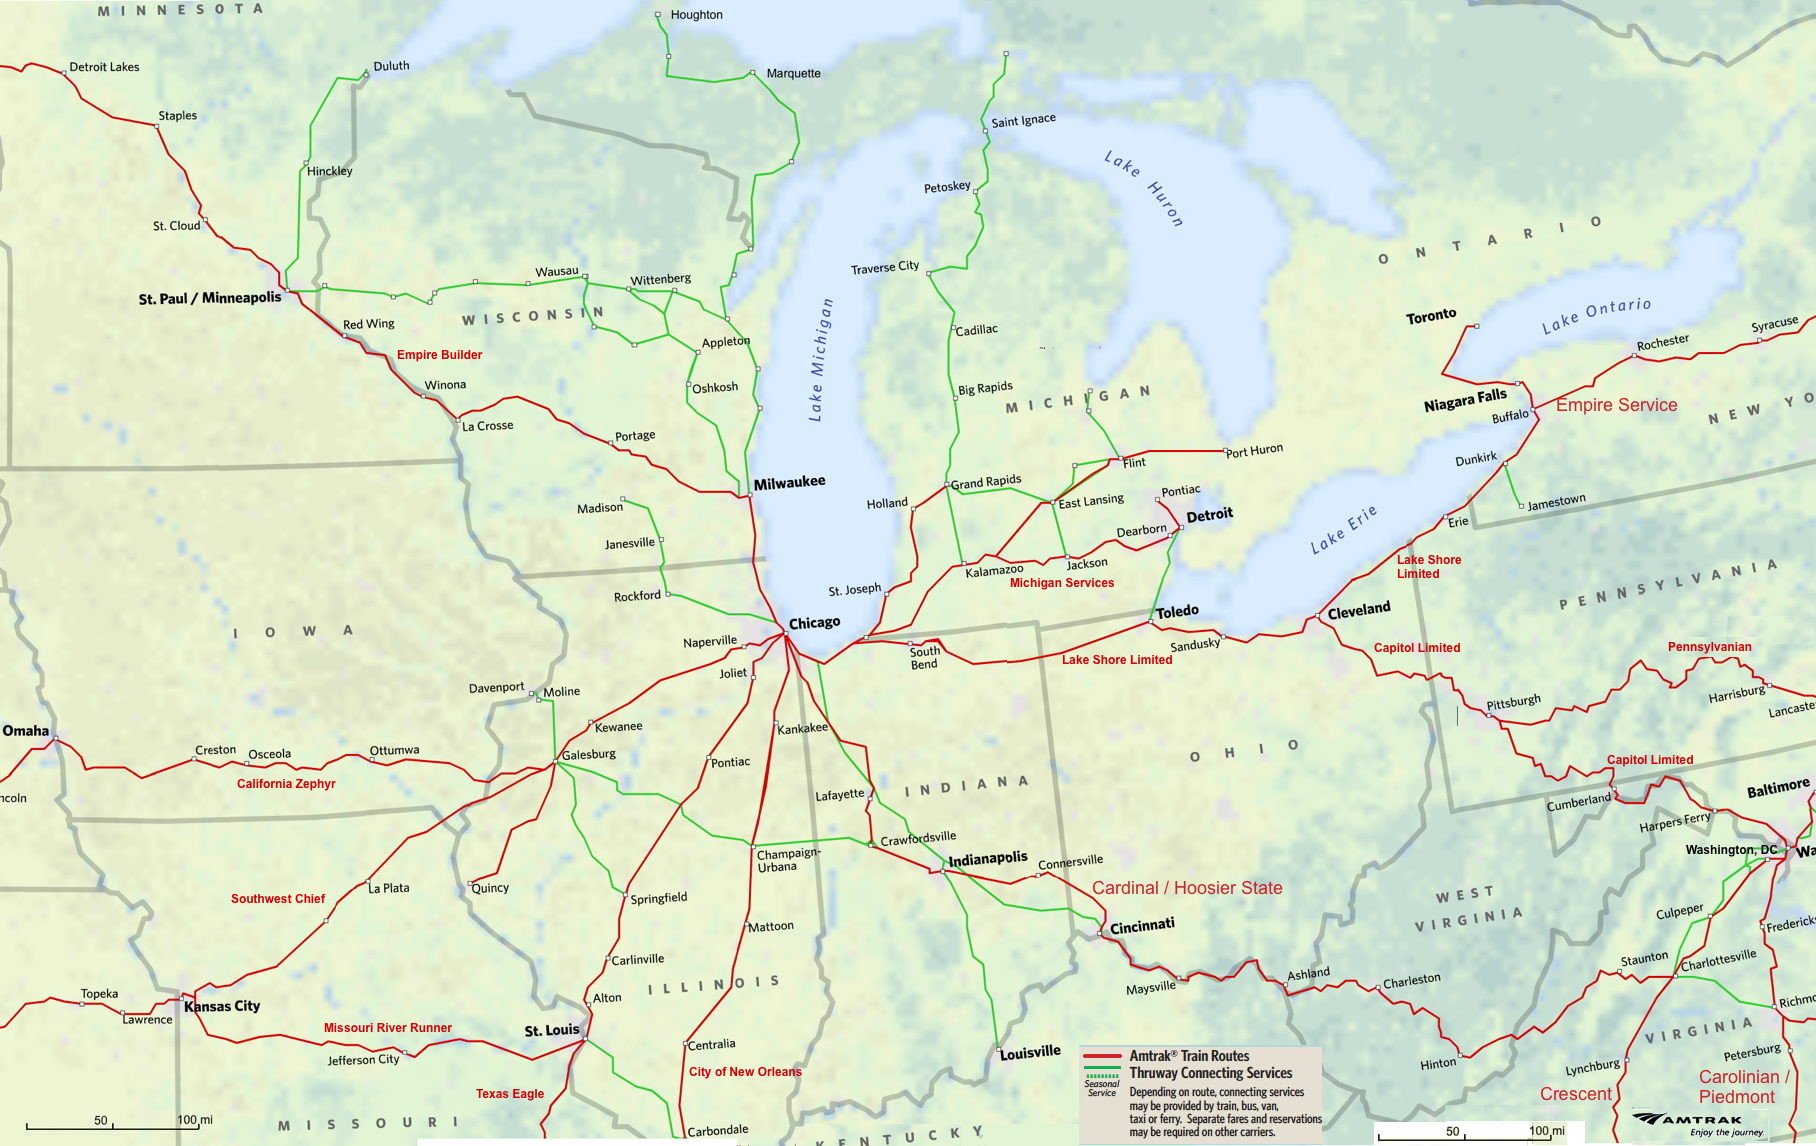 Midwest Amtrak Route Map - Amtrak Texas Eagle Route Map